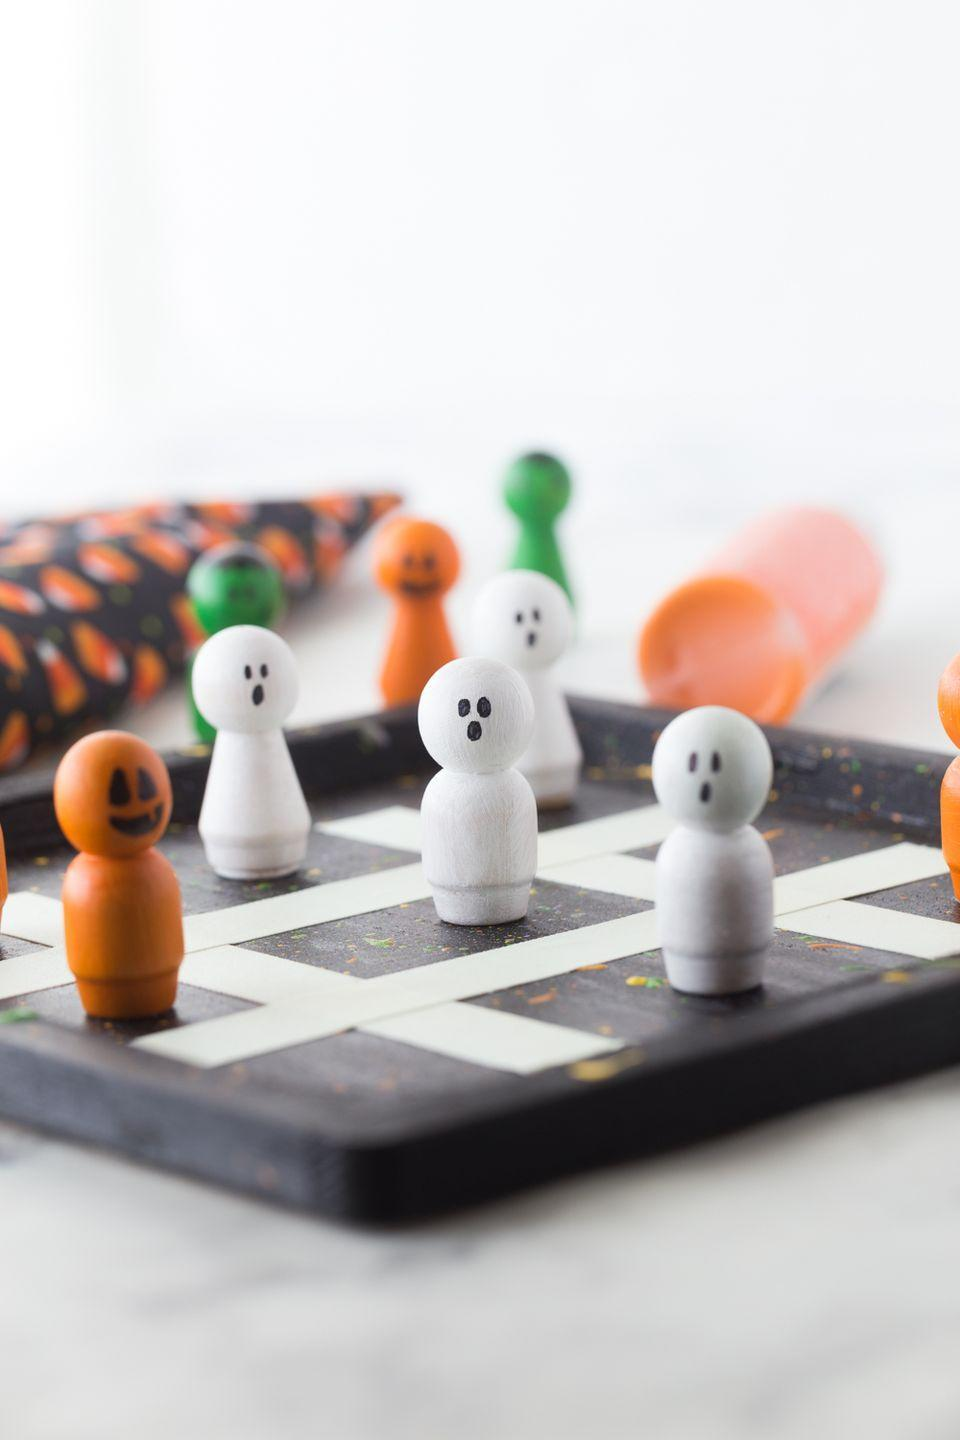 "<p>Kids will be entertained for hours with this Halloween-themed tic-tac-toe game they can make from scratch using a wooden tray and peg dolls found at the craft store. </p><p><strong>Get the tutorial at <a href=""https://www.madetobeamomma.com/halloween-tic-tac-toe/"" rel=""nofollow noopener"" target=""_blank"" data-ylk=""slk:Made to be a Momma"" class=""link rapid-noclick-resp"">Made to be a Momma</a>.</strong></p><p><a class=""link rapid-noclick-resp"" href=""https://www.amazon.com/Woodpeckers-Decorative-Wooden-Doll-People/dp/B00WQDTTCE/?tag=syn-yahoo-20&ascsubtag=%5Bartid%7C10050.g.4950%5Bsrc%7Cyahoo-us"" rel=""nofollow noopener"" target=""_blank"" data-ylk=""slk:SHOP PEG DOLLS"">SHOP PEG DOLLS</a><br></p>"